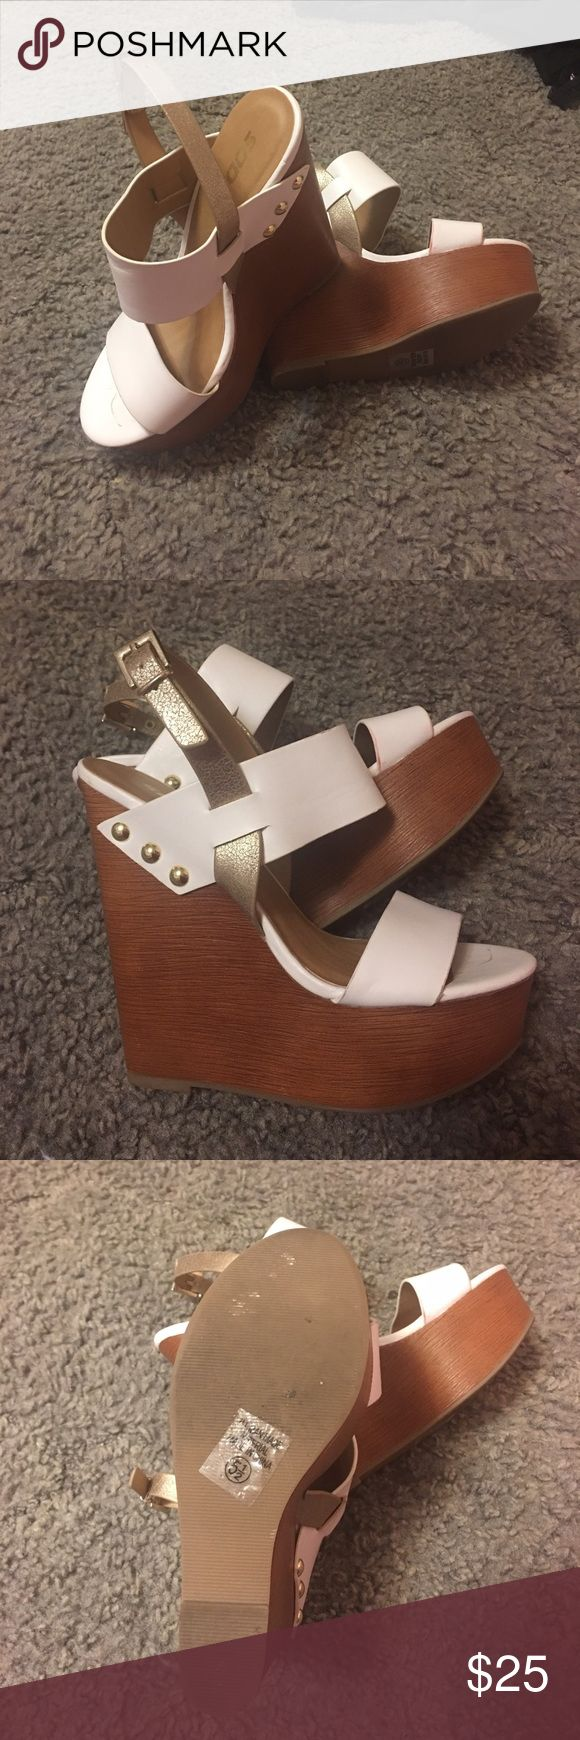 Wedges White and gold wedges Shoes Wedges